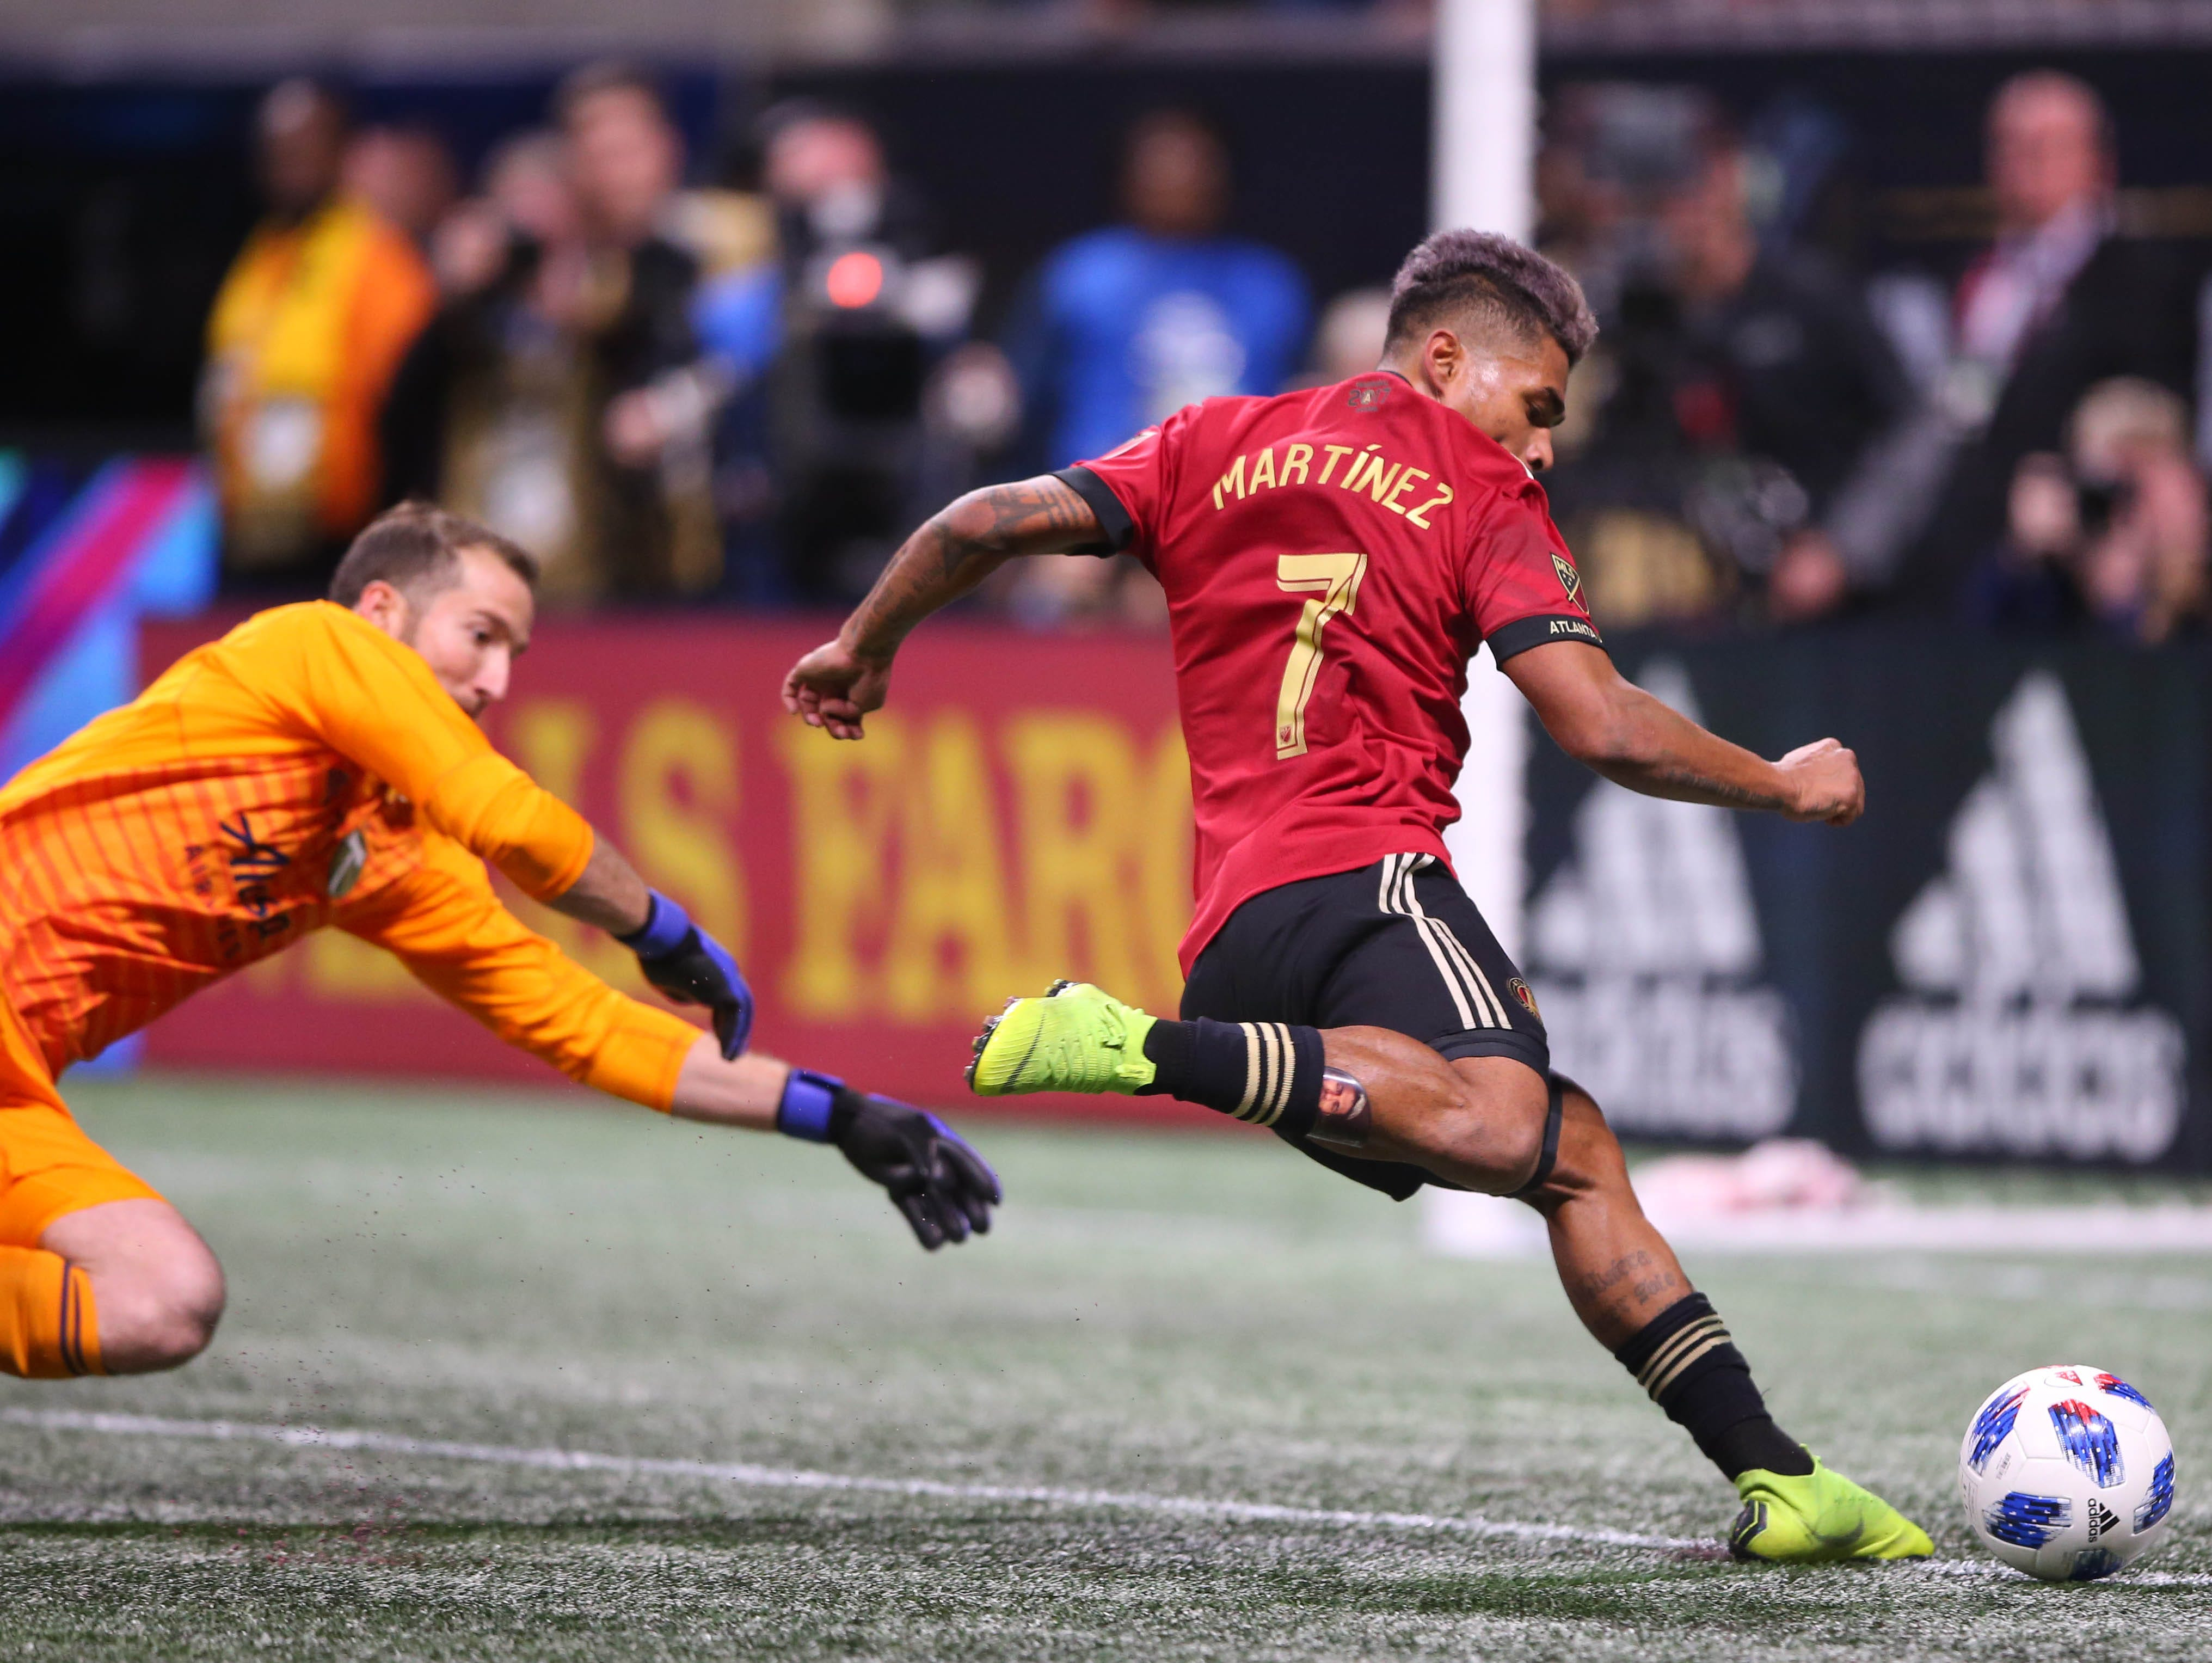 Atlanta United forward Josef Martinez drills a goal past Portland Timbers goalkeeper Jeff Attinella in the 39th minute of the 2018 MLS Cup at Mercedes-Benz Stadium.